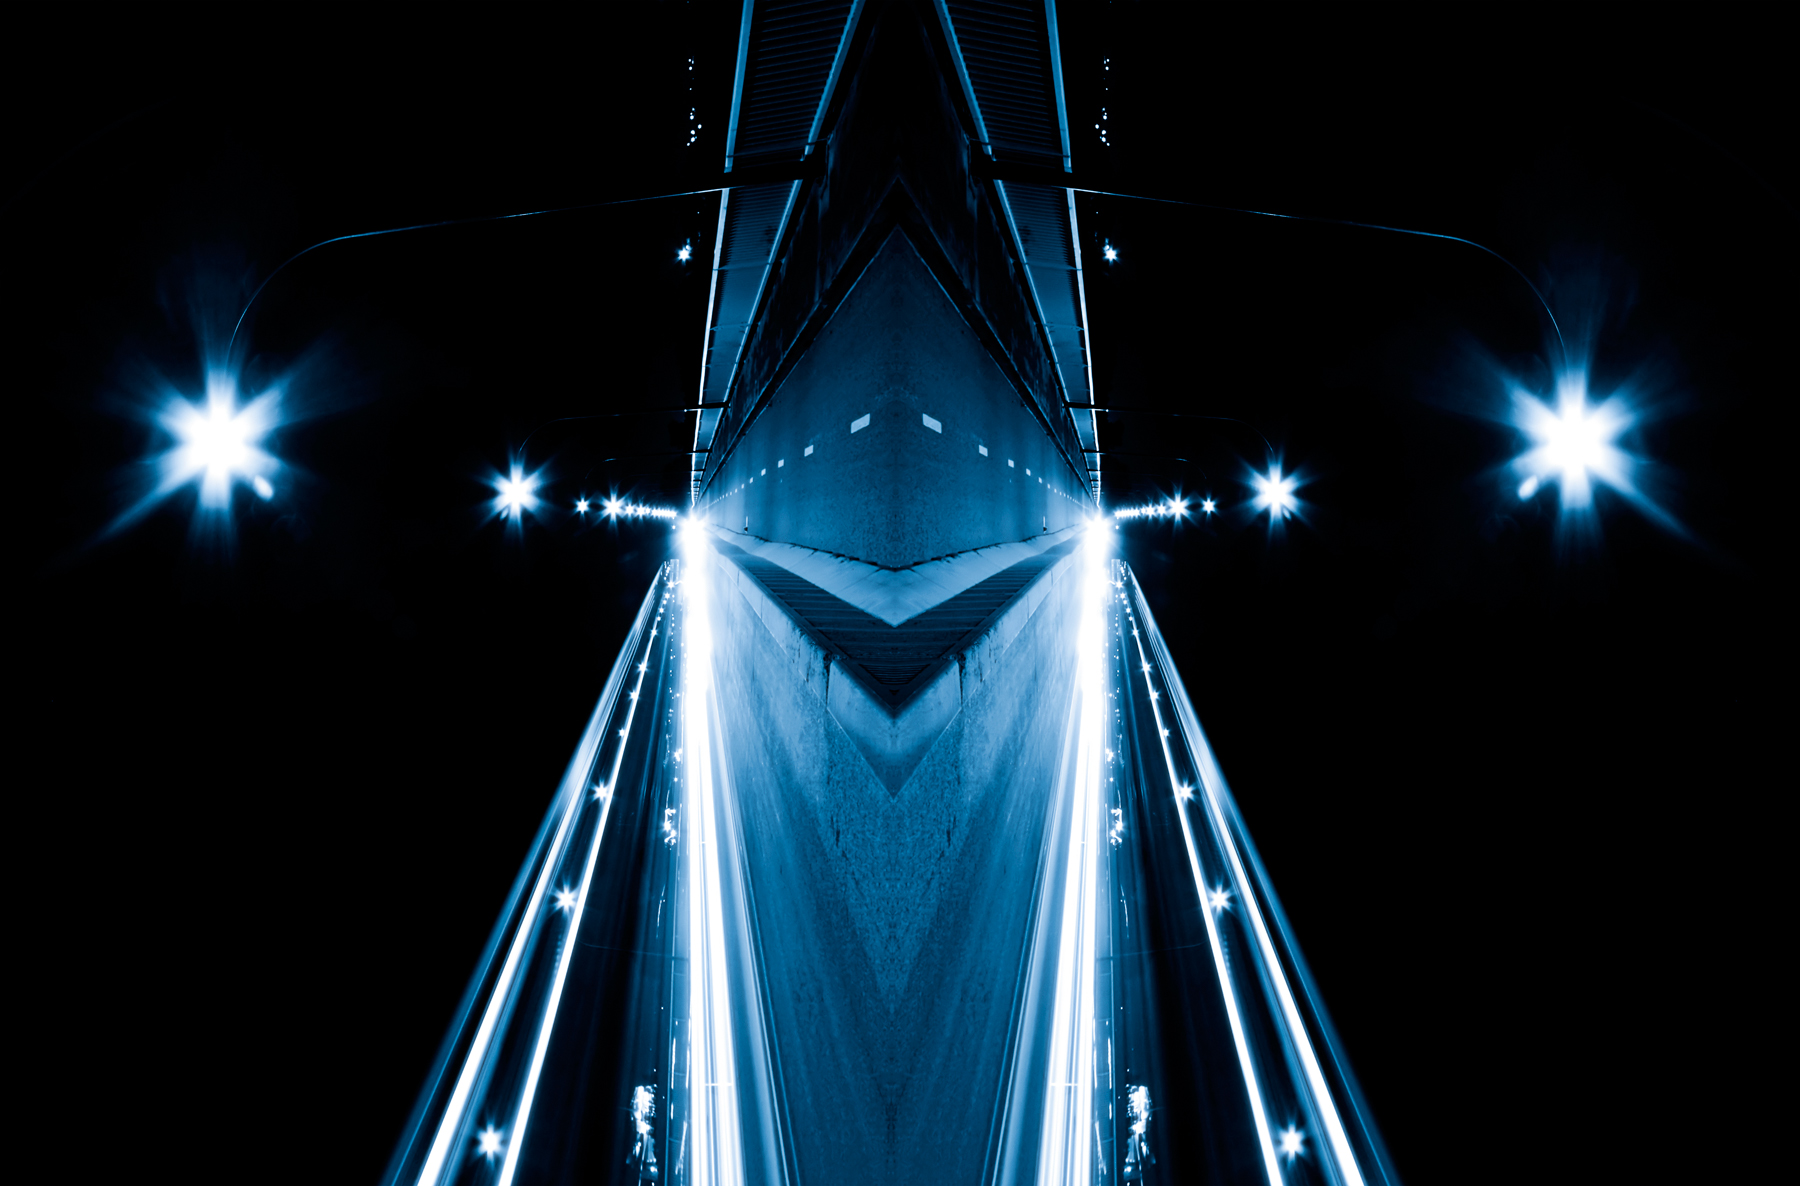 Urban Squid Abstract, Abstract, Symmetric, Robot, Silly, HQ Photo